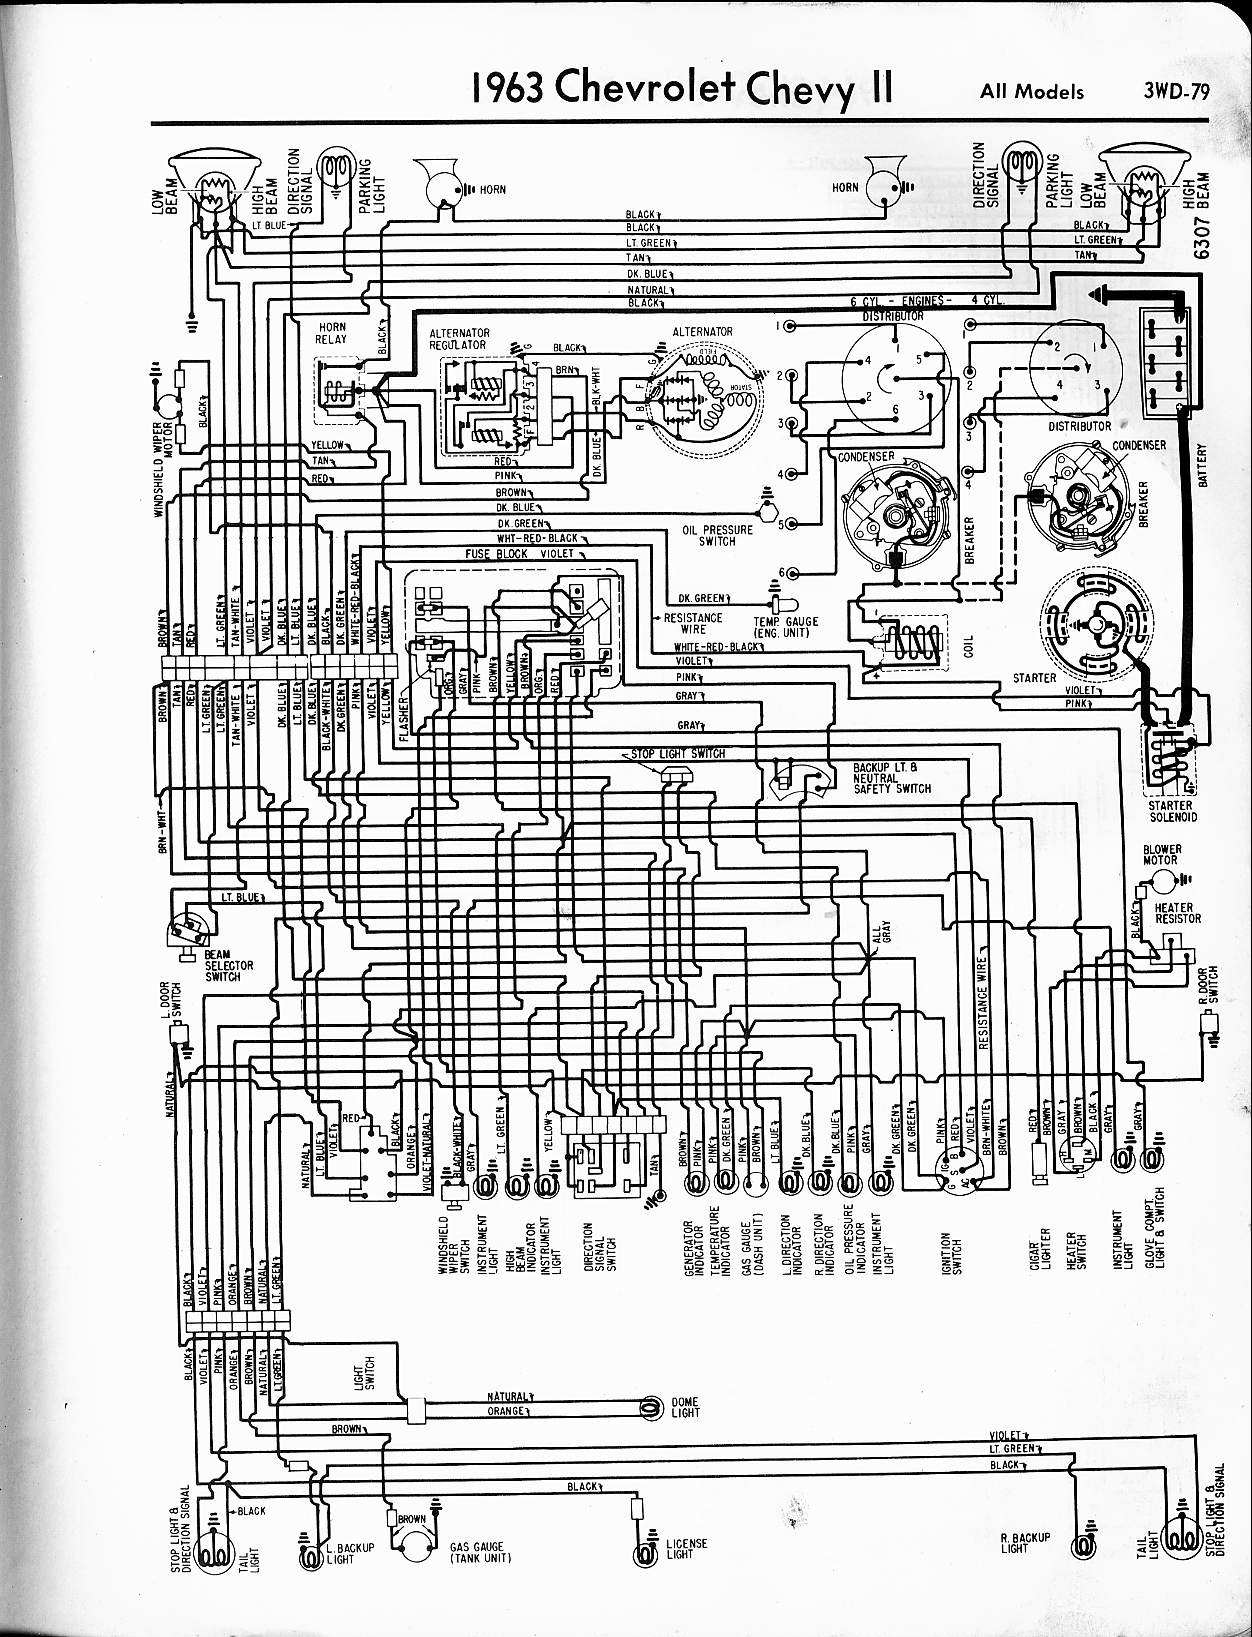 MWireChev63_3WD 079 57 65 chevy wiring diagrams 1970 chevelle dash wiring diagram at cos-gaming.co